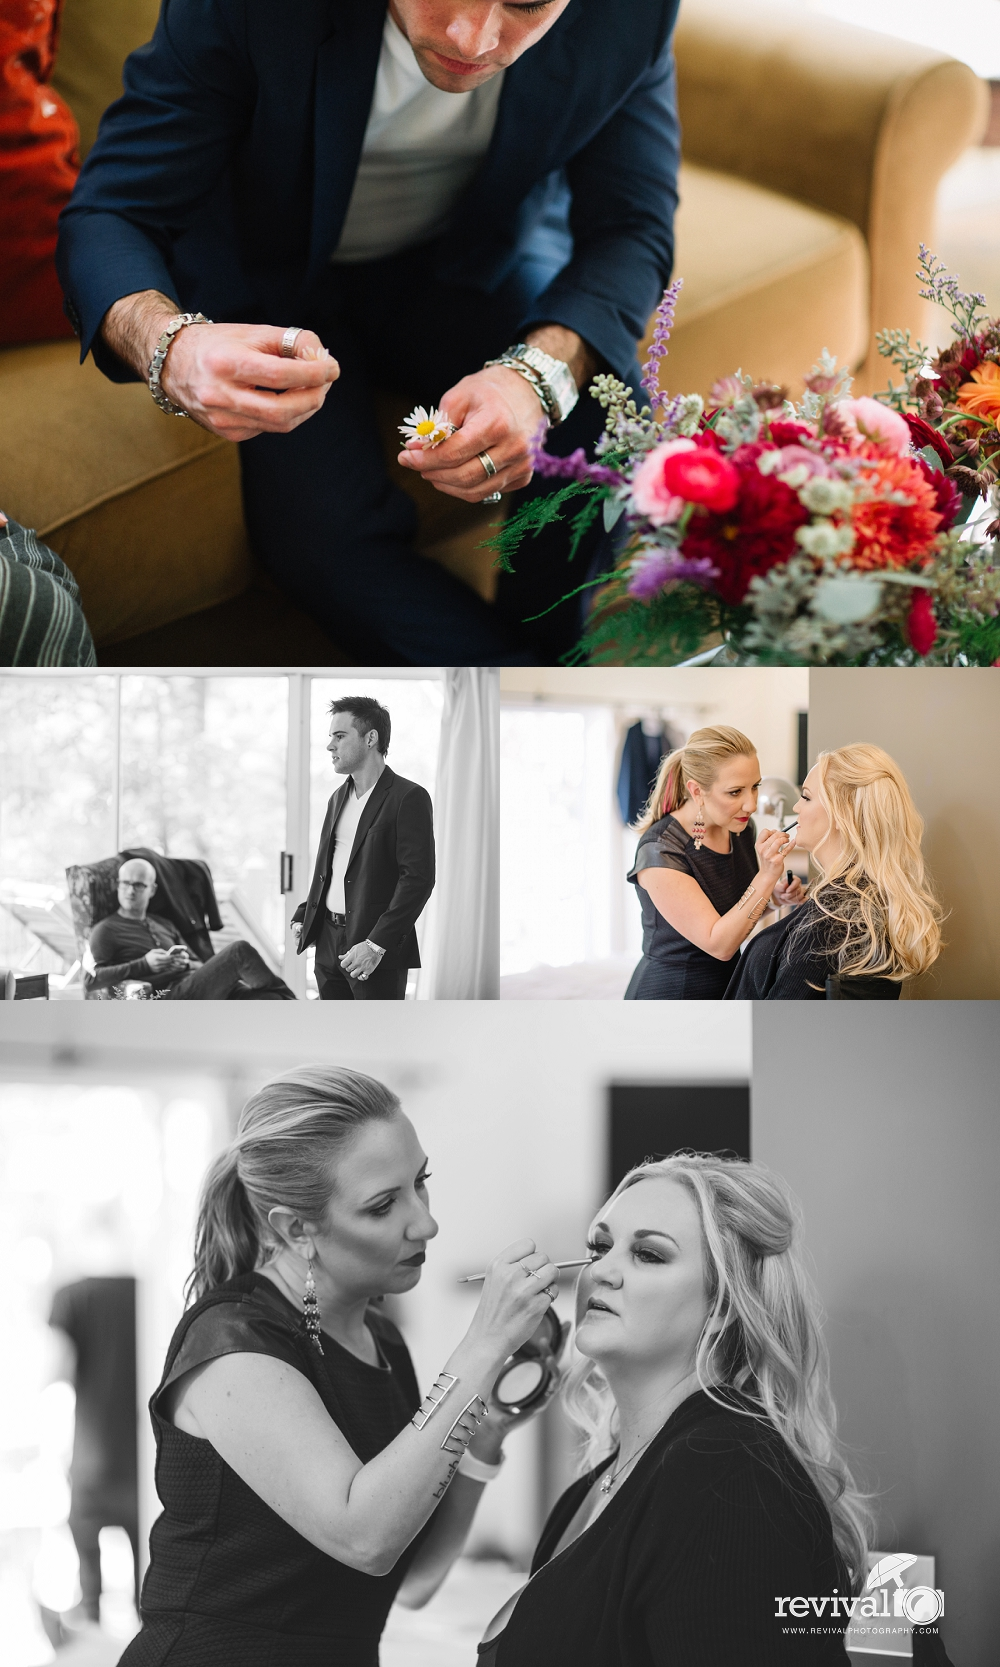 Leanne + Roderick: An Intimate Mountain Wedding at the Lodge on Lake Lure Weddings by Revival Photography www.revivalphotography.com